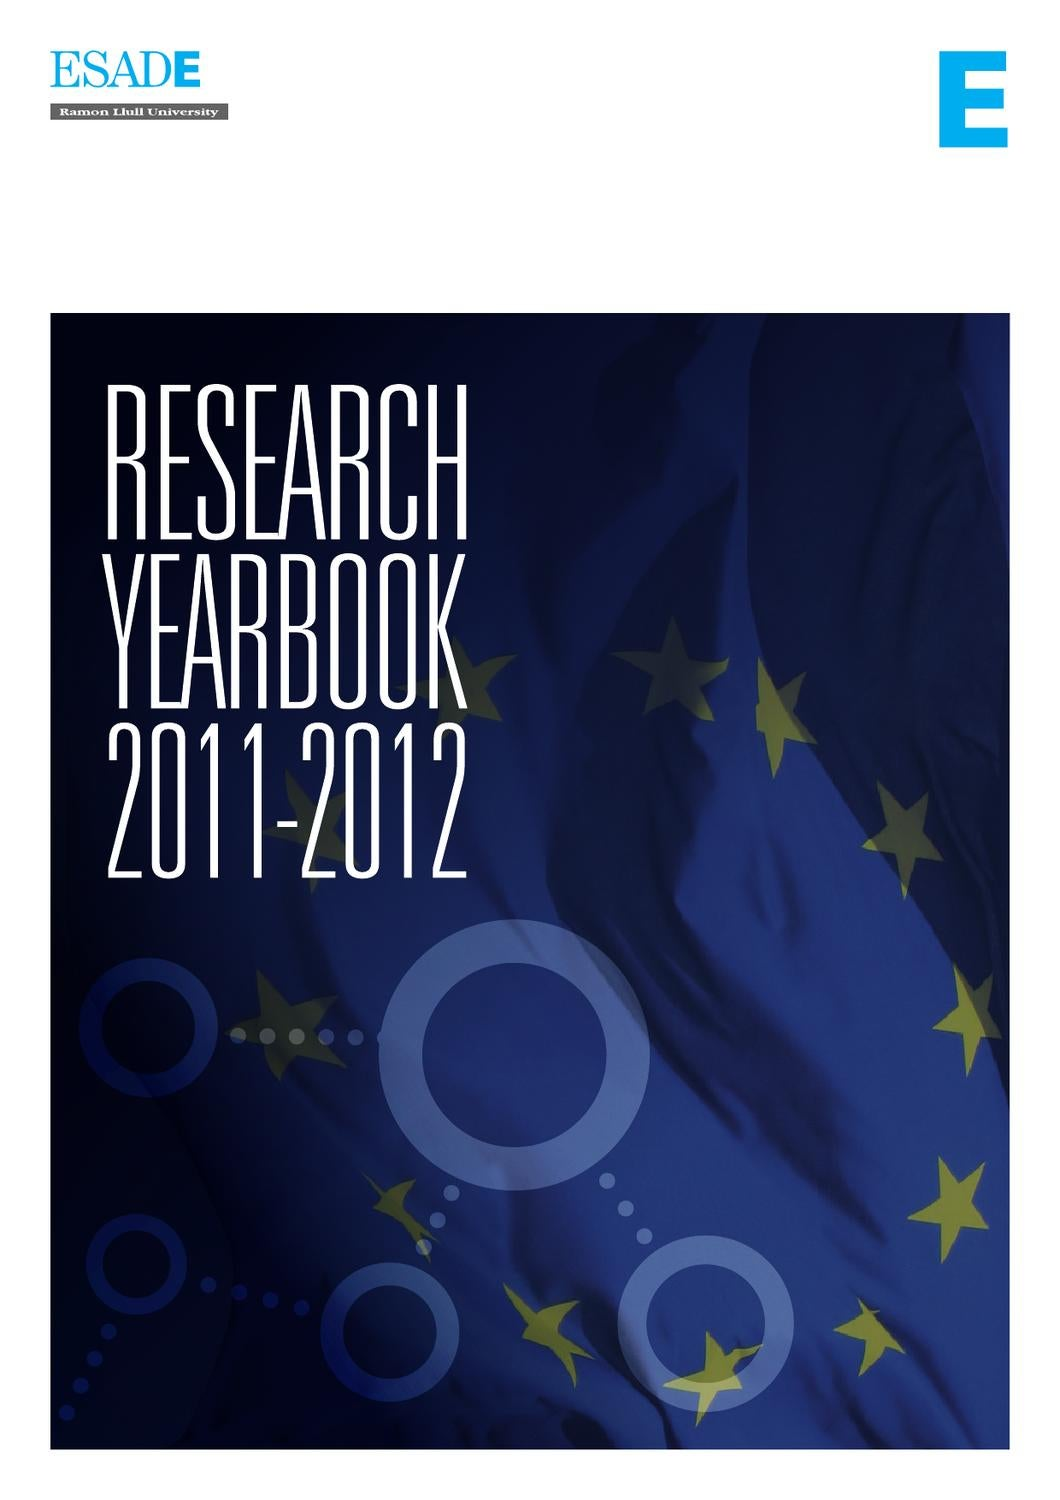 Research Yearbook 2011-2012 by ESADE - issuu